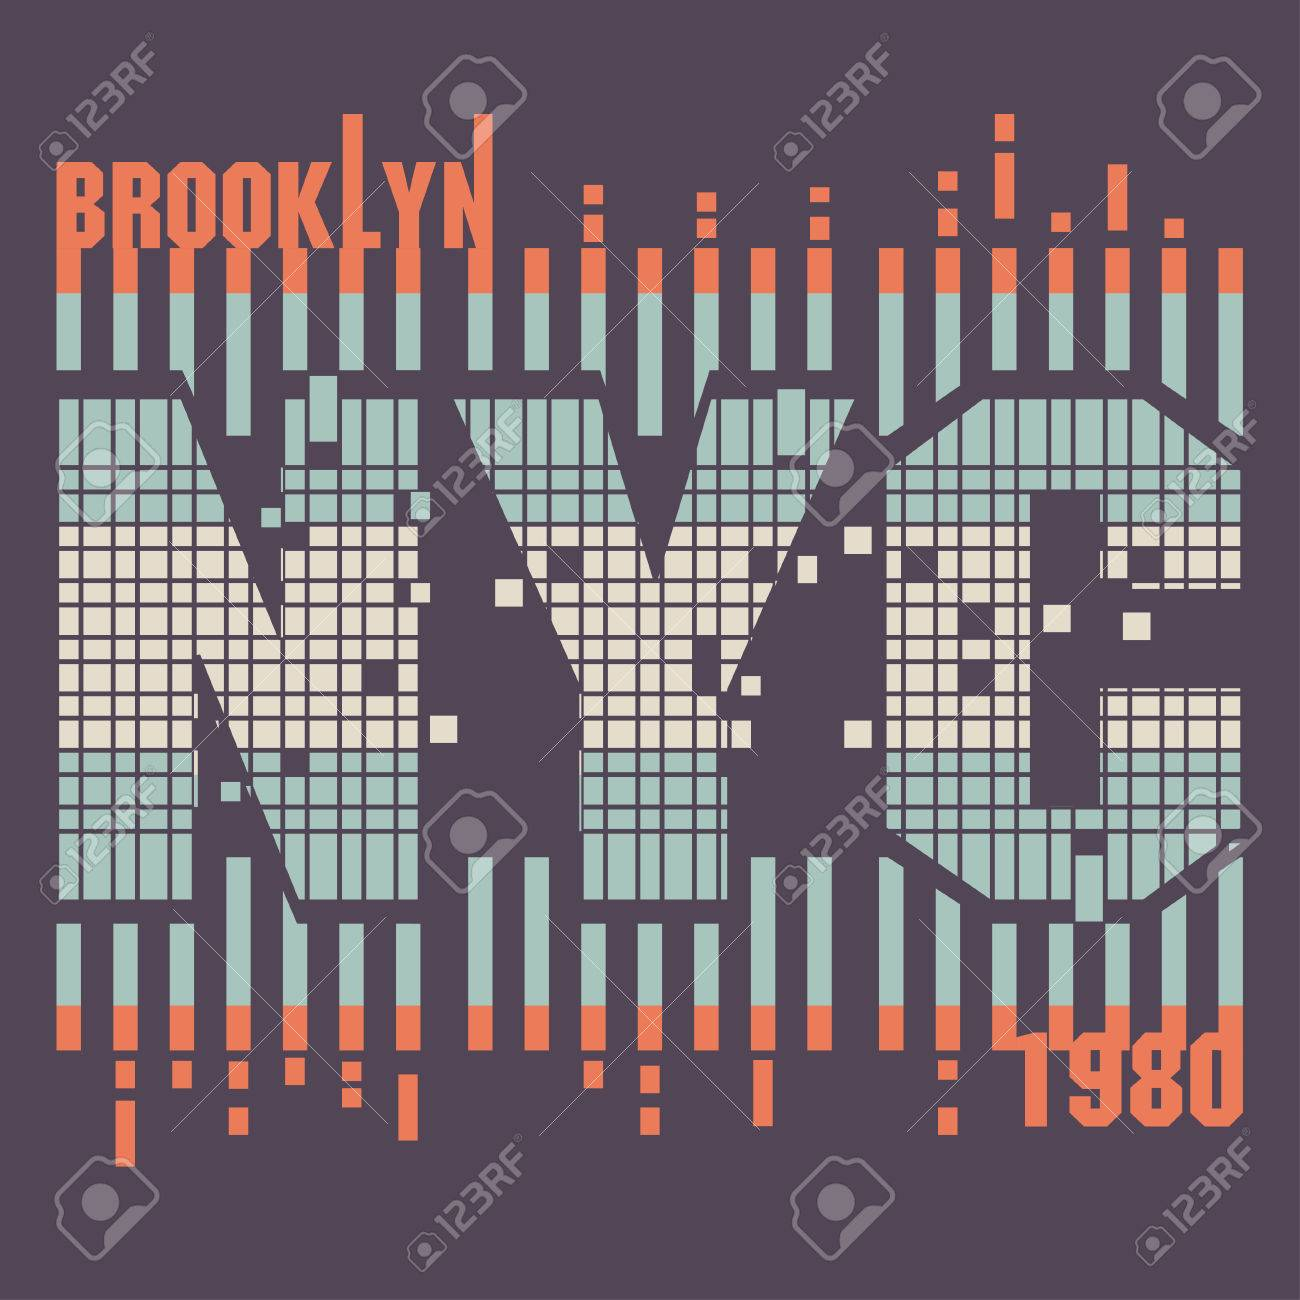 Design a t shirt nyc - New York City Typography Graphics Retro Style Brooklyn T Shirt Design Vector Stock